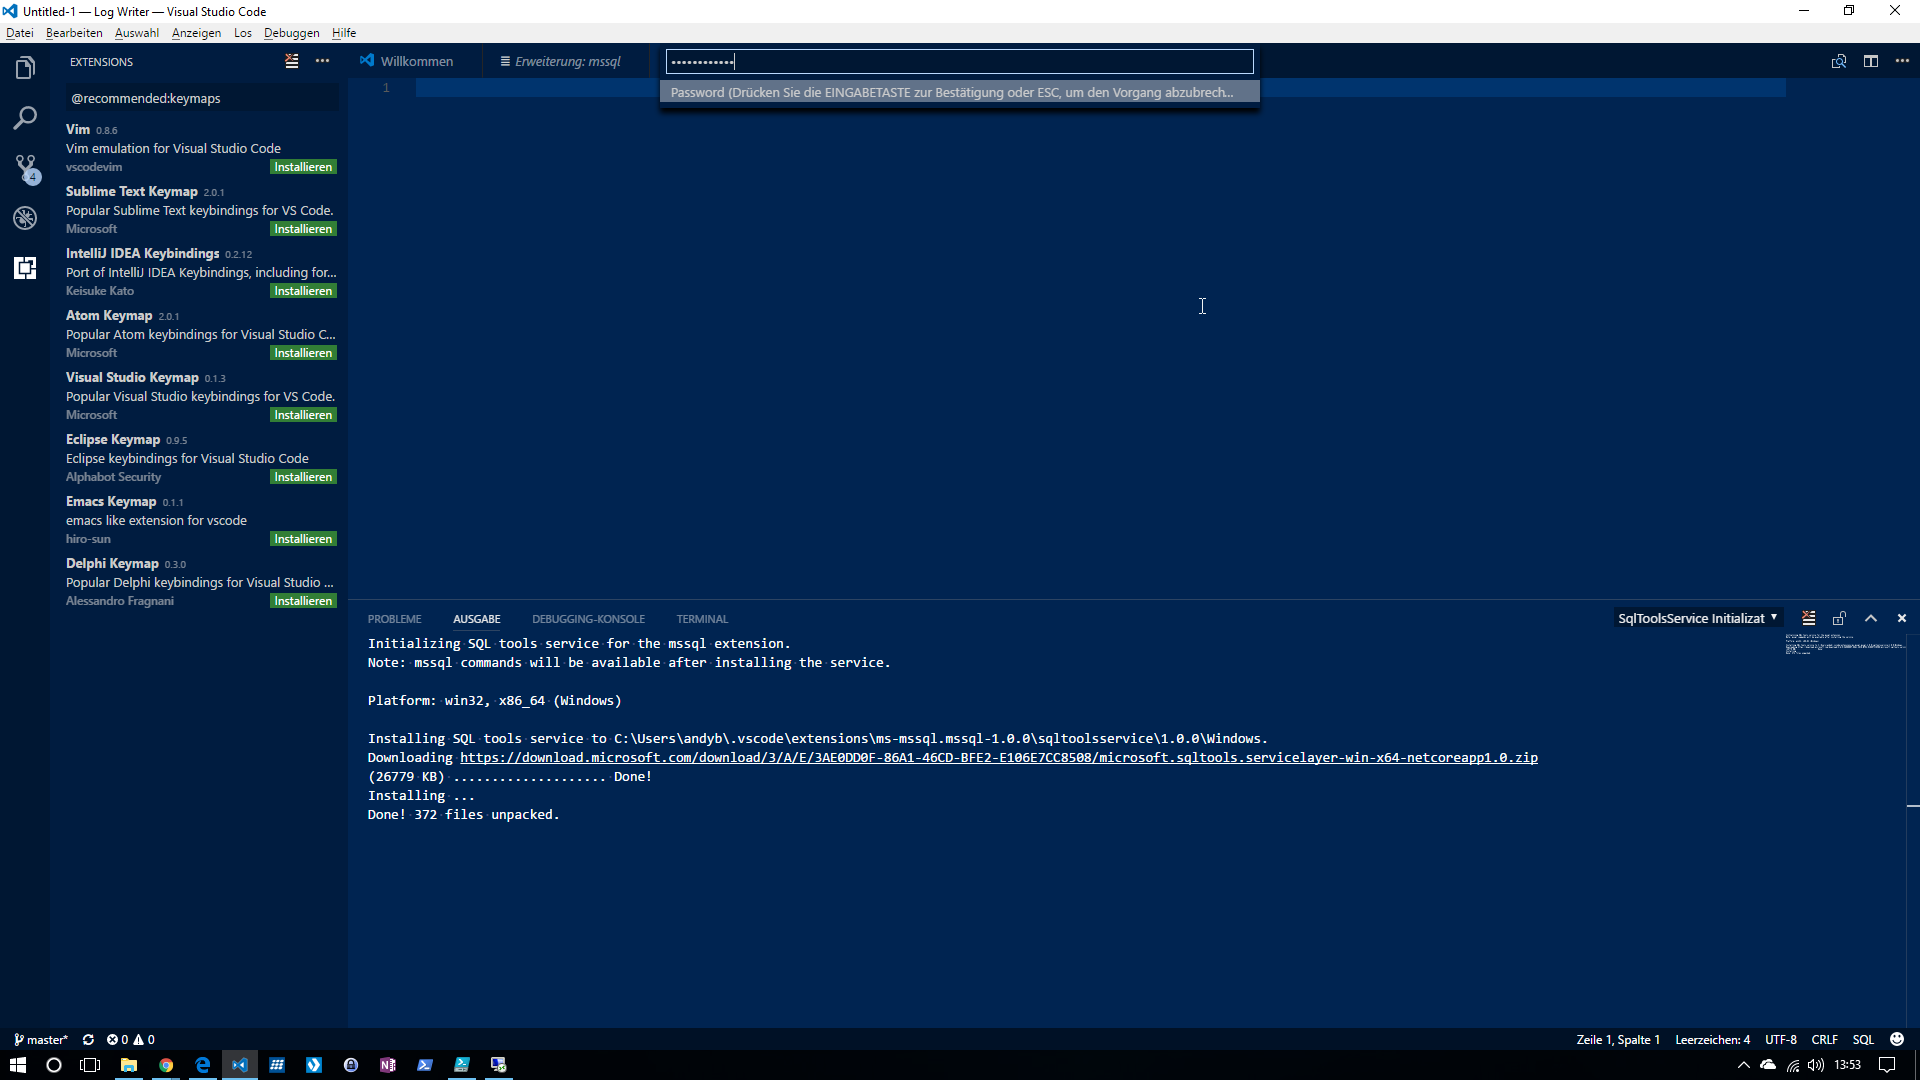 azure_sql_create_conprofile_06